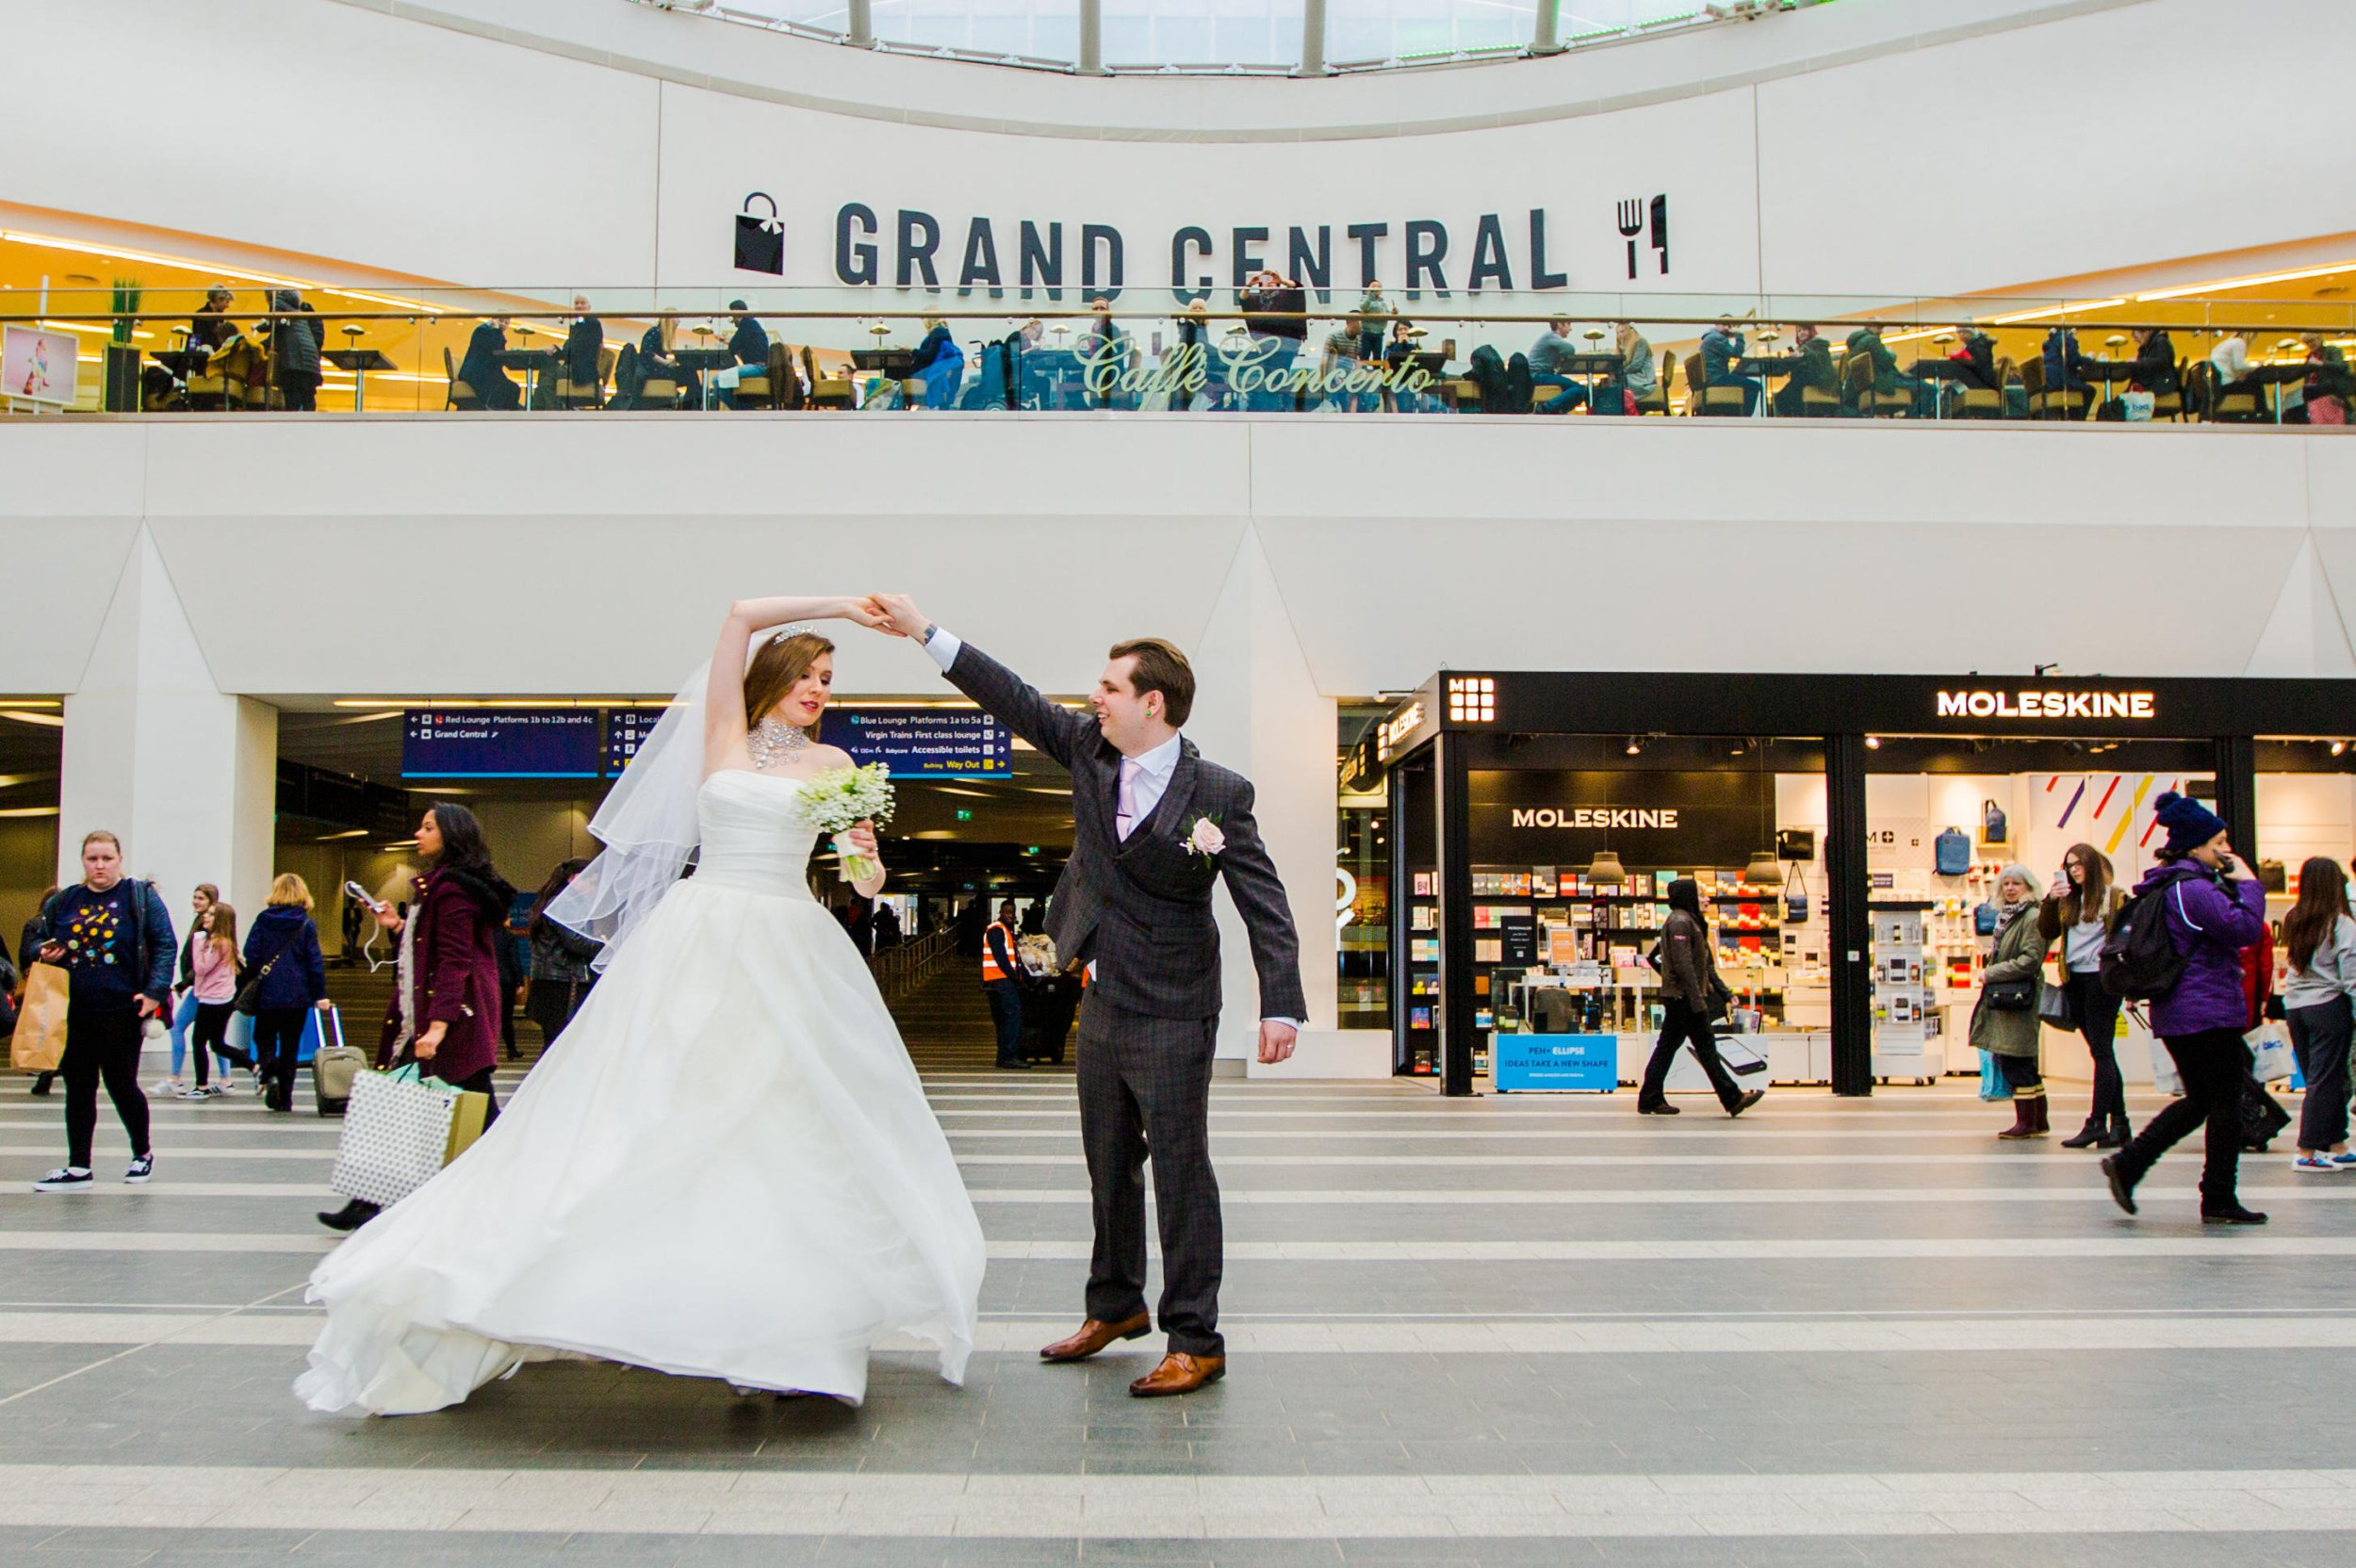 It was a wedding train with a difference - when a couple of newlyweds posed for their marriage photos in the shopping centre above New Street station. See NTI story NTIWED. Alex and Luke Jarrett wanted to remember their big day with some pictures that were out of the ordinary. So they secured permission to use the giant Grand Central mall in Birmingham city centre as the backdrop for their snaps. The couple mingled with amazed shoppers and passengers as they became the first to use the showpiece centre for wedding photos. The photo shoot with a difference happened last Saturday, after Alex and Luke, from Stafford, married at the Burlington Hotel. Once the formalities were over, the couple and their bridesmaids and groomsmen trooped through the city centre for their snaps with their wedding photographer, who wanted to be known only as Aaron.